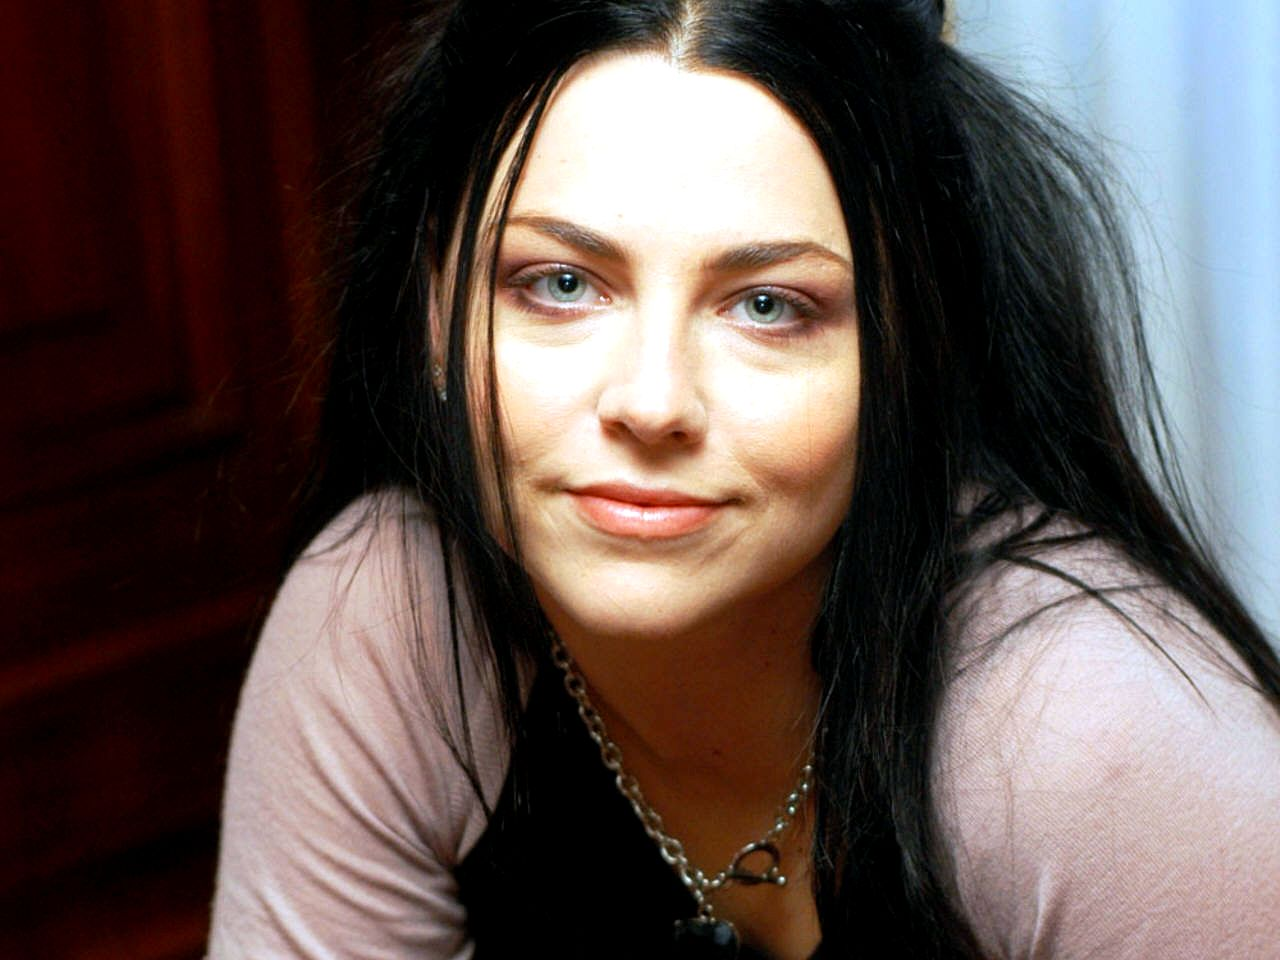 Amy Lee images Amy Lee wallpaper photos 31680640 1280x960